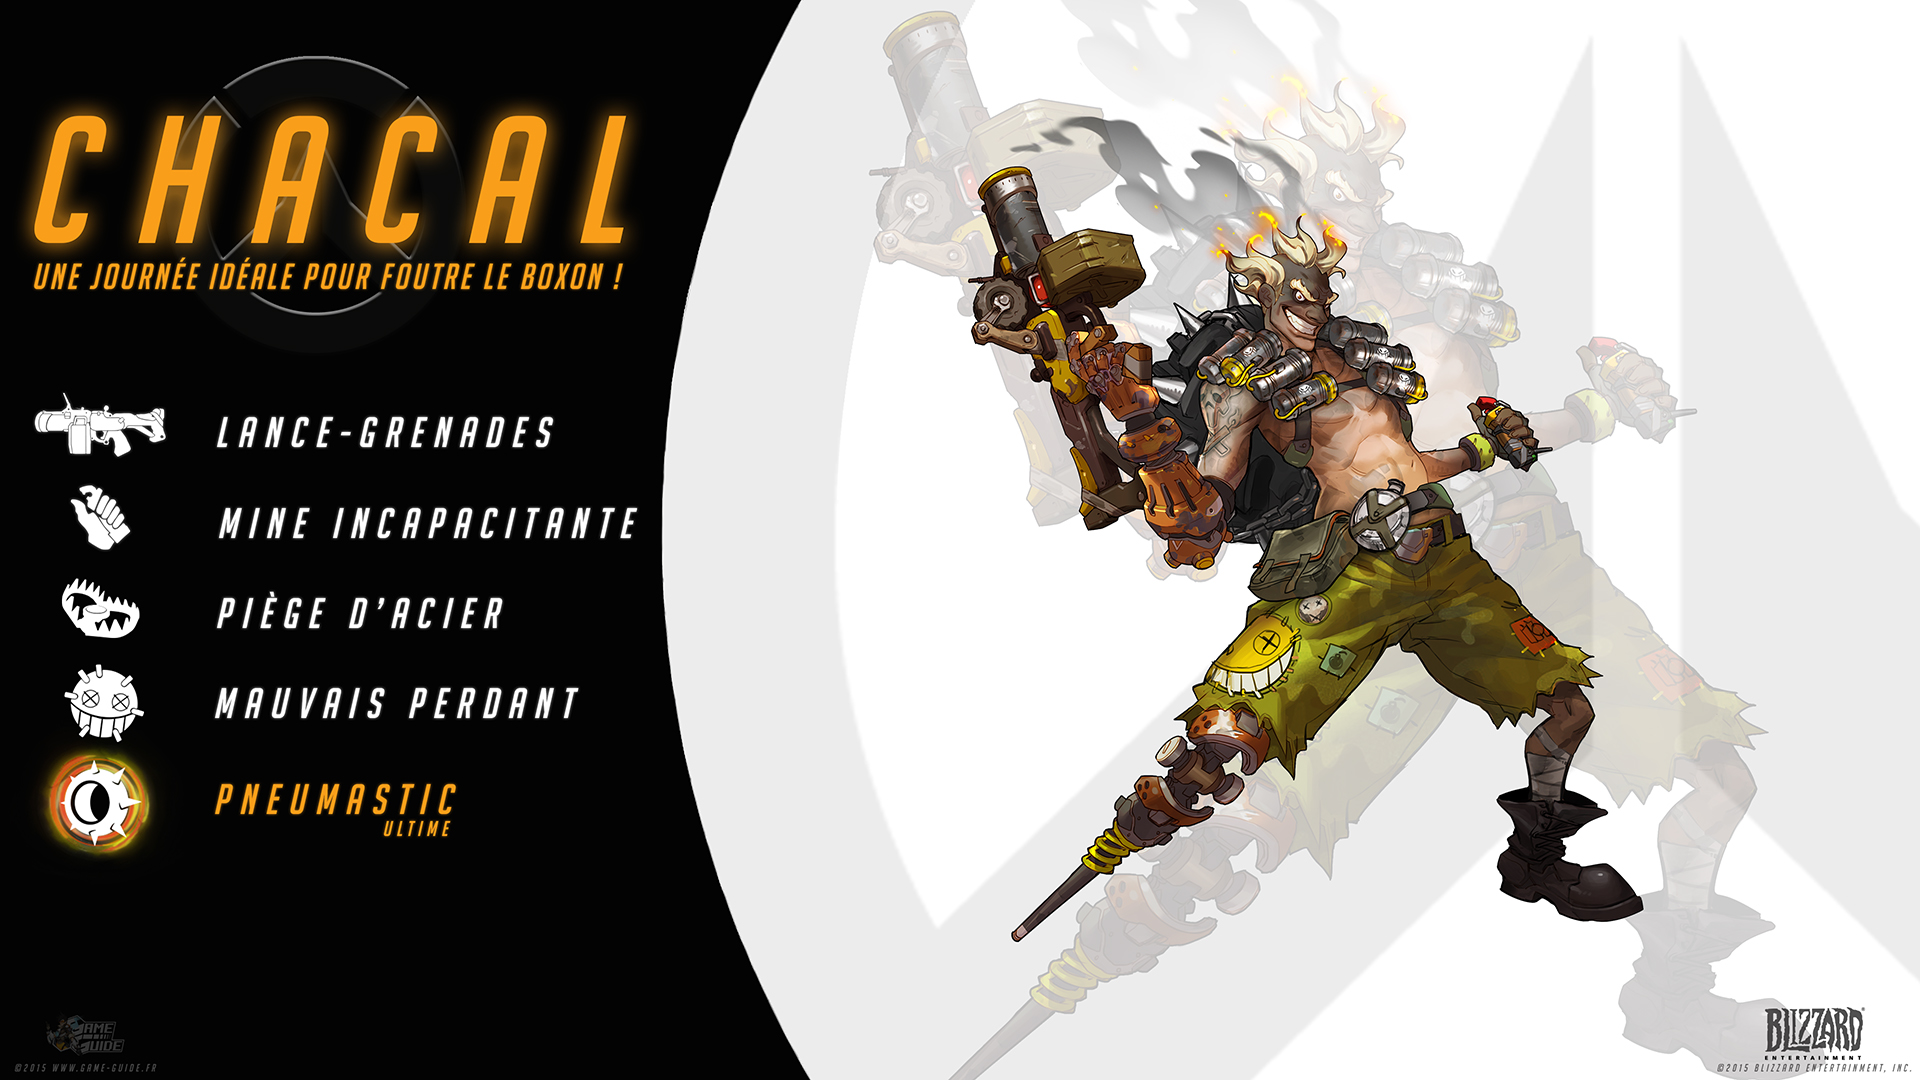 Overwatch Guide Chacal Quot Une Journ 233 E Id 233 Ale Pour Foutre